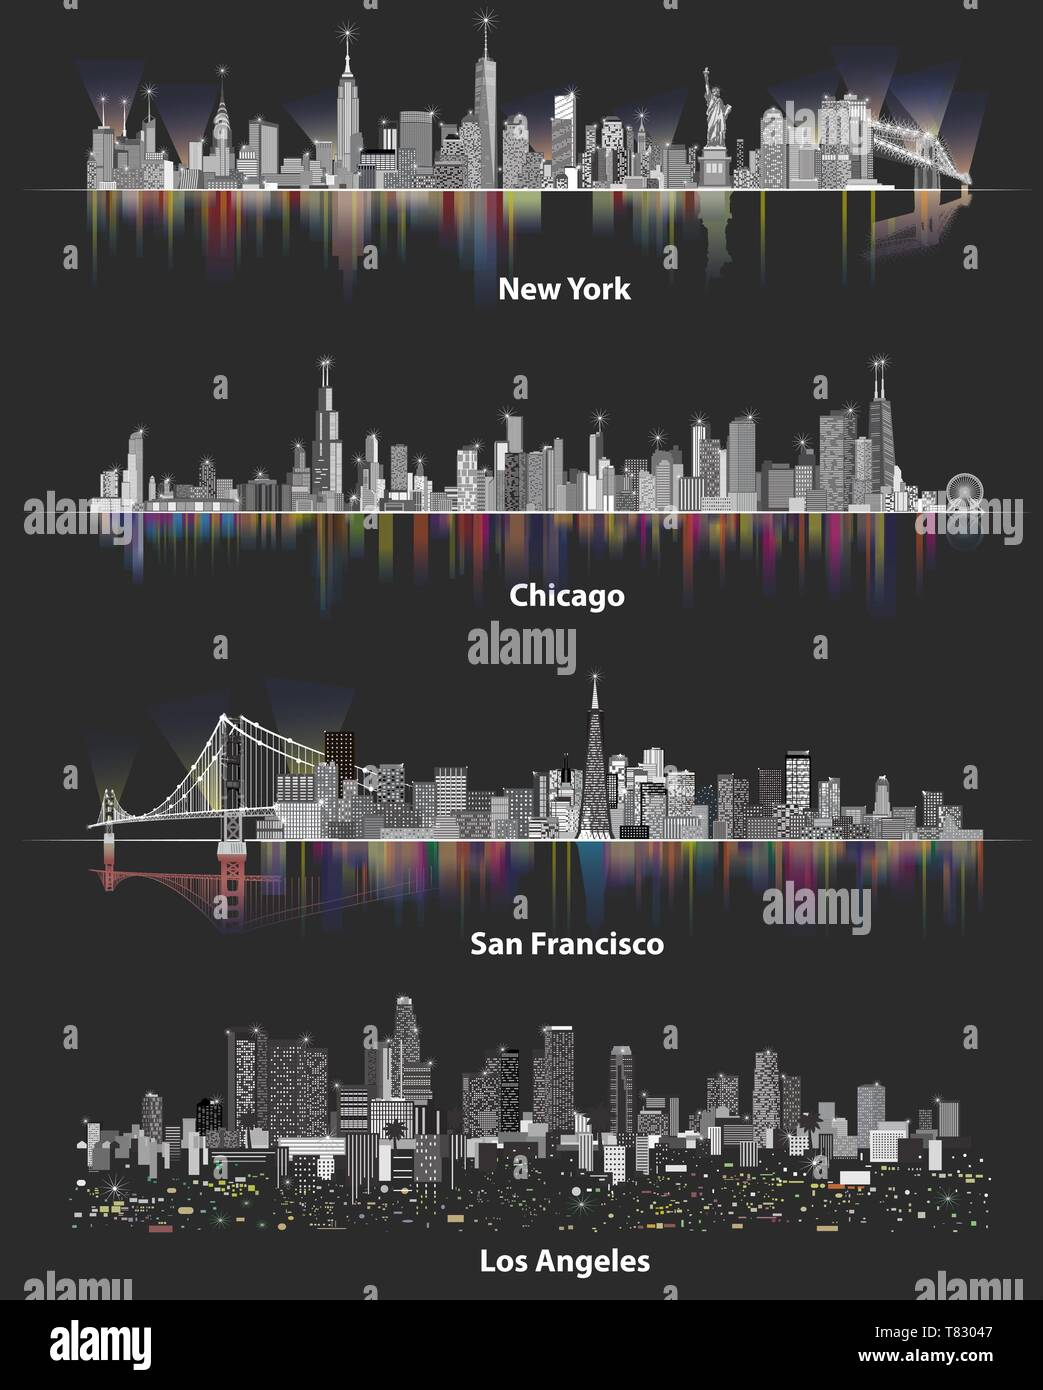 abstract vector illustrations of United States city skylines - Stock Vector